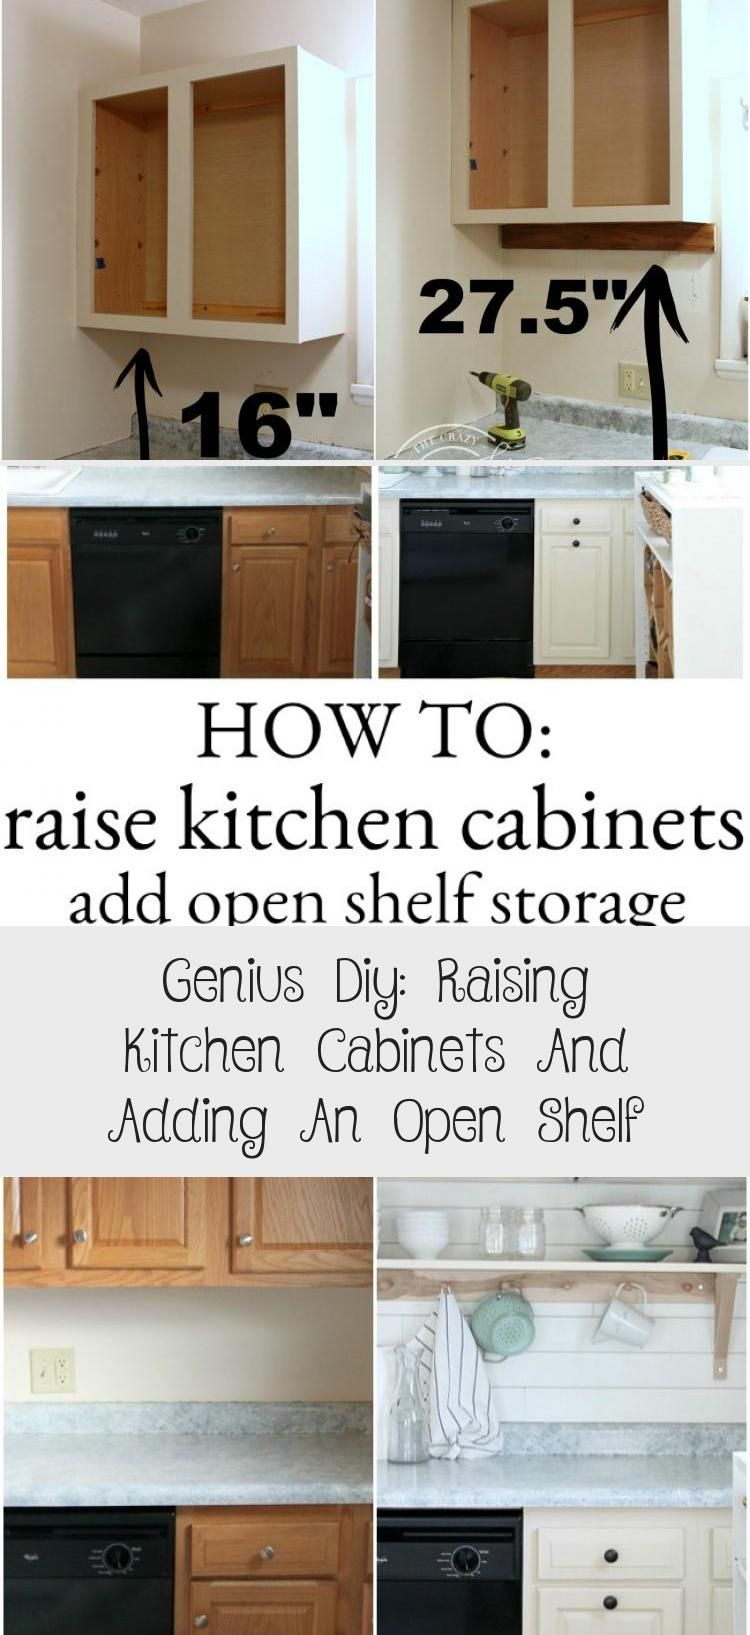 Learn How To Raise Kitchen Cabinets To The Ceiling And Add A Floating Shelf Underneath To Maximize Storage Space In 2020 Diy Kitchen Shelves Shelf Decor Open Shelving